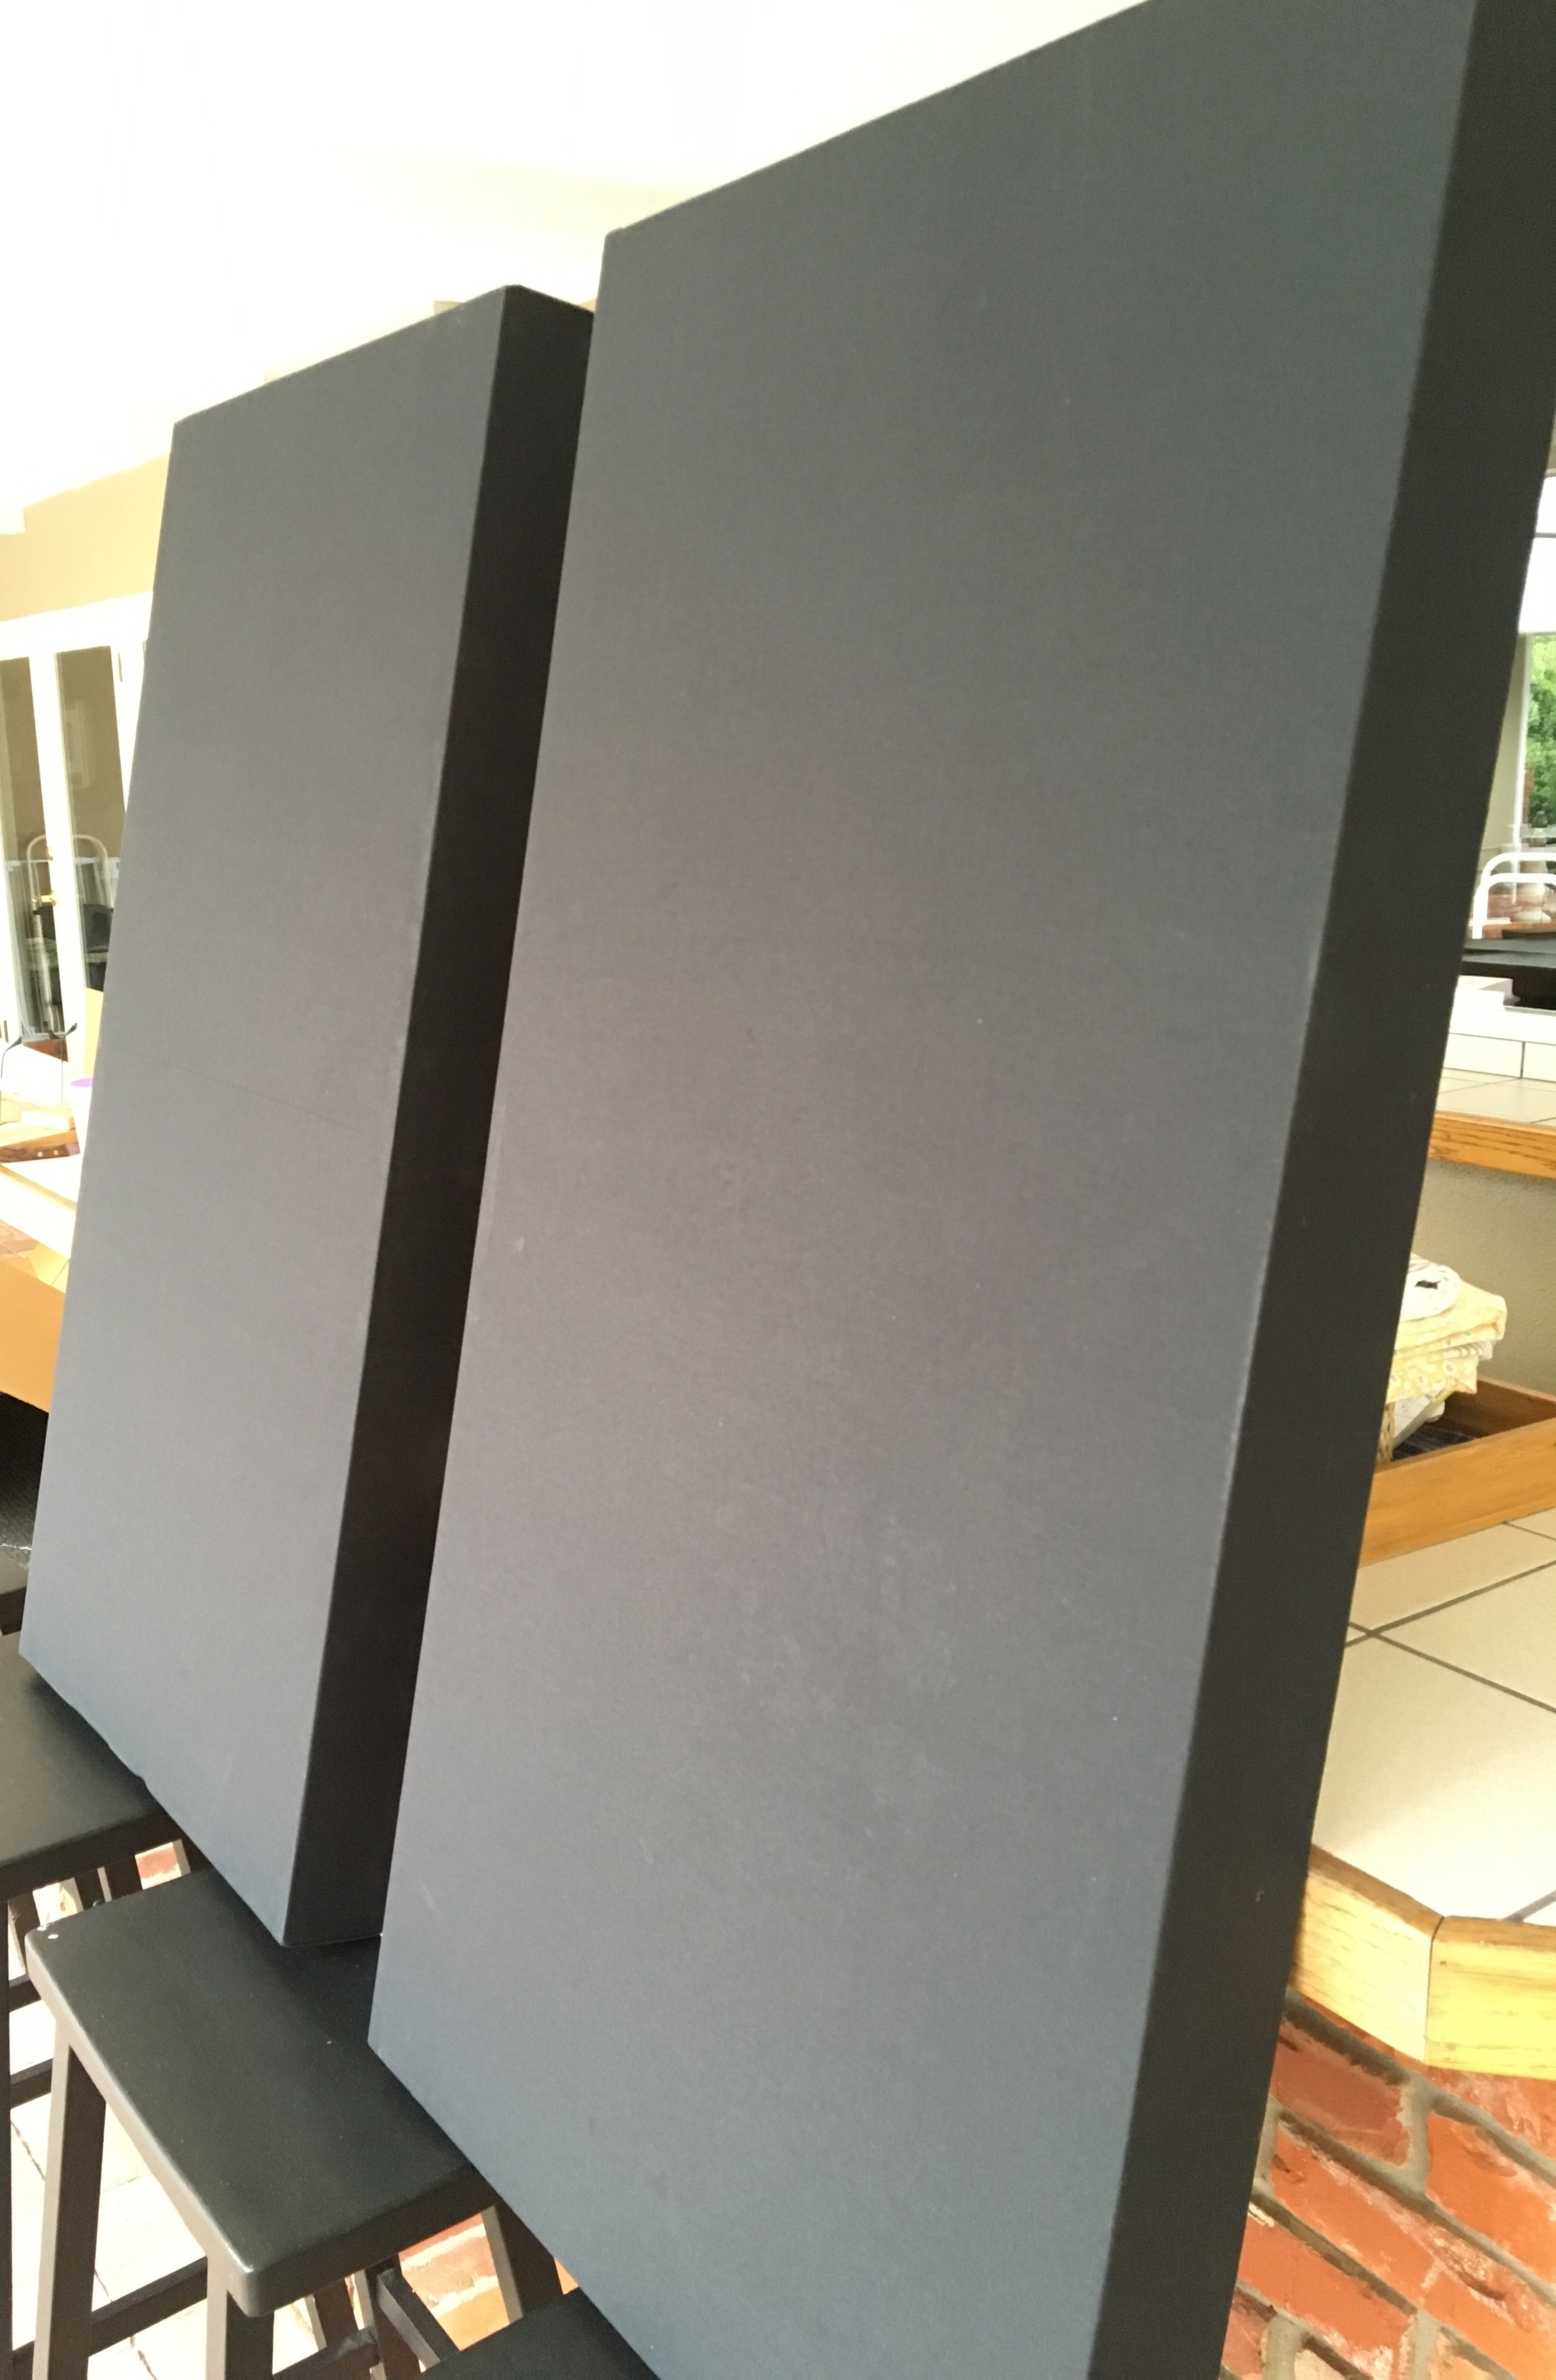 How To Build A Sound Absorbing Panel In 5 Easy Steps — Full